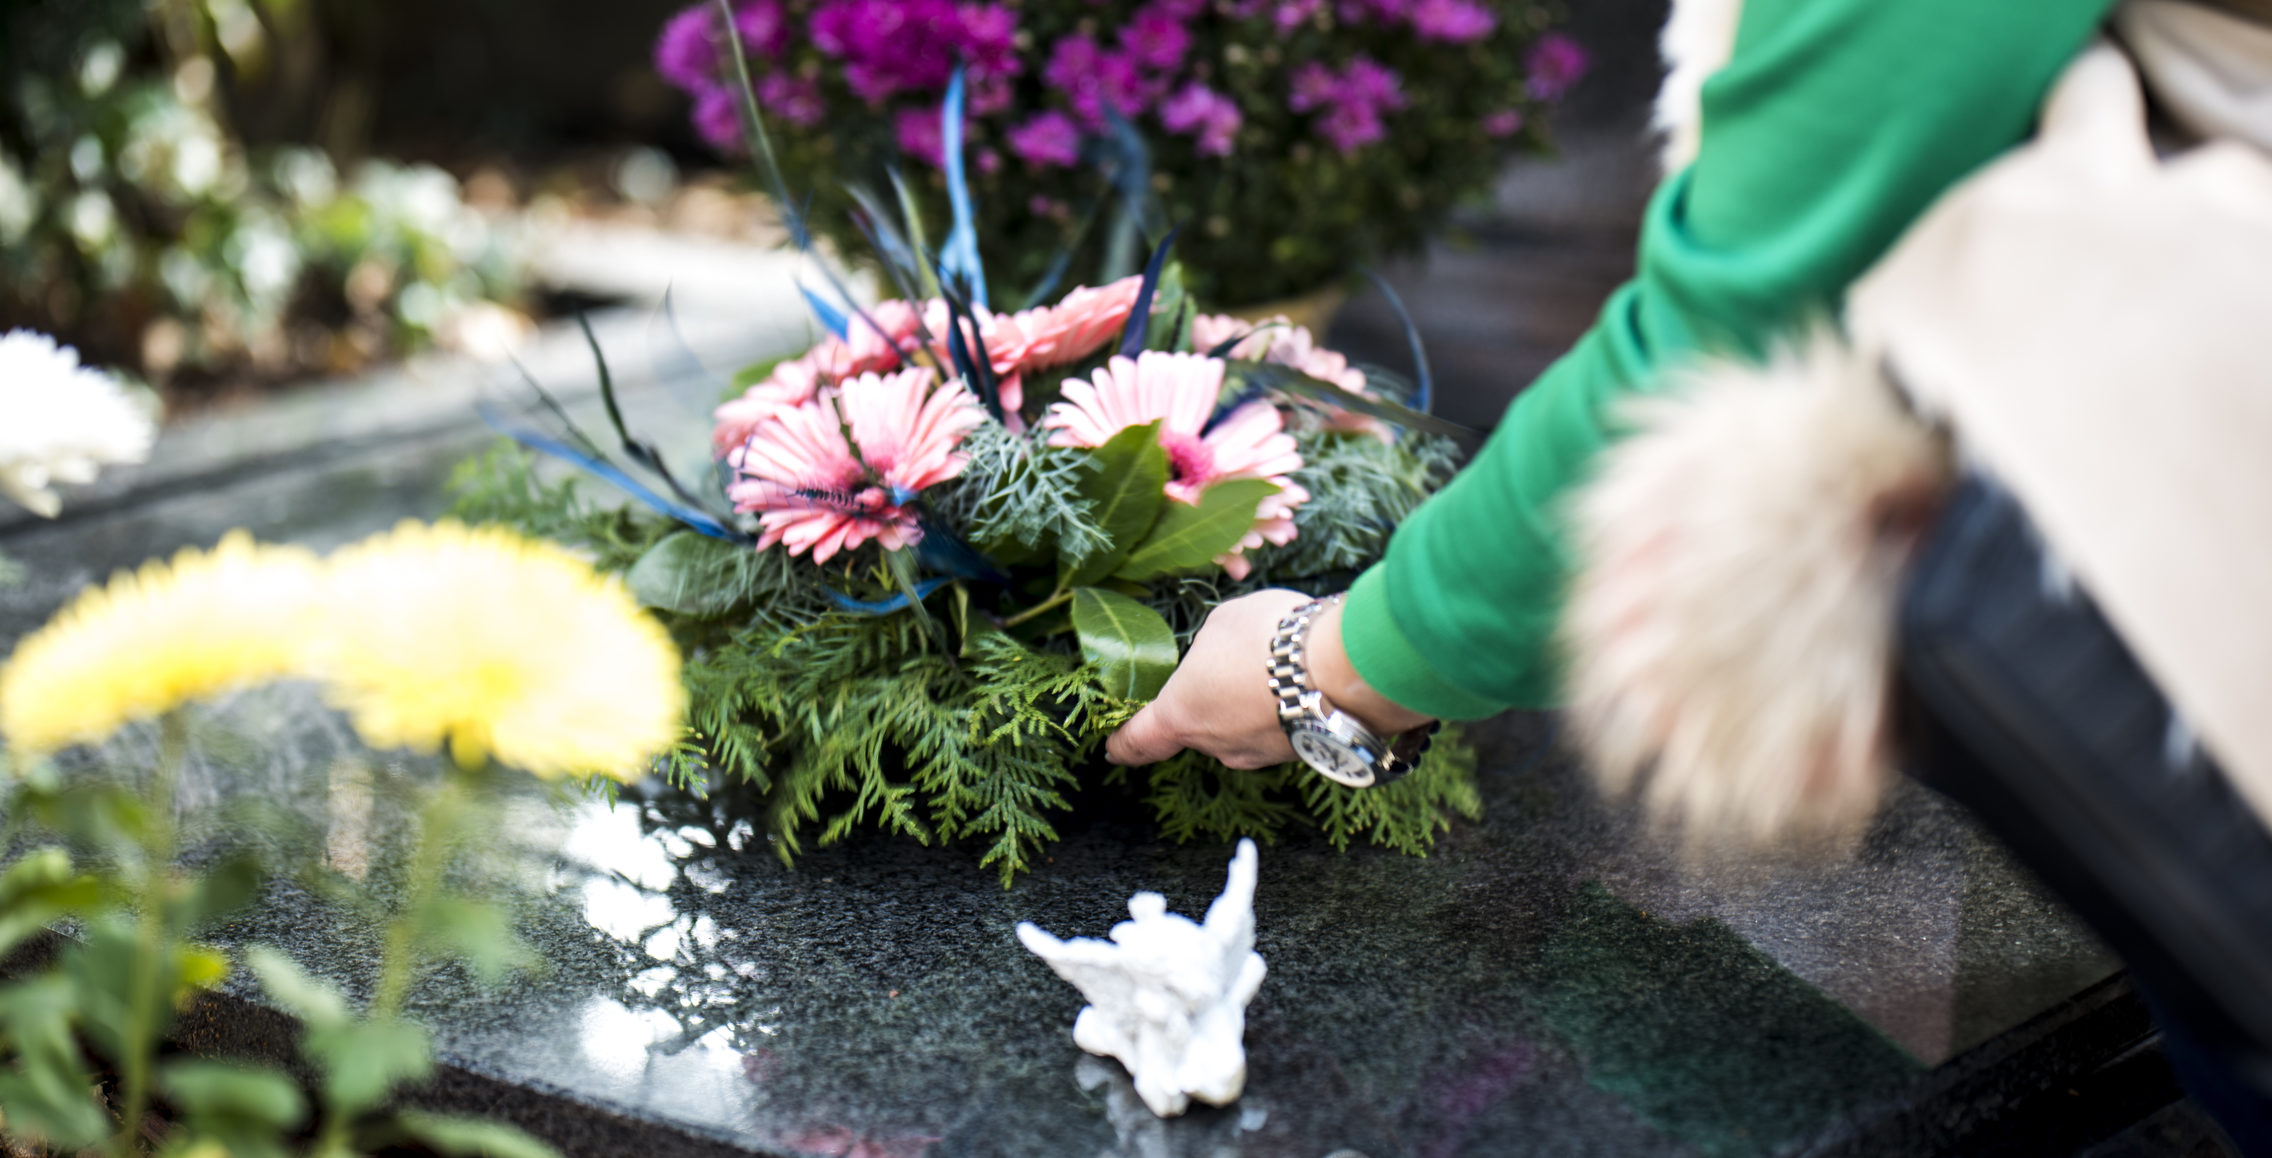 Woman's hand putting some flowers on a grave